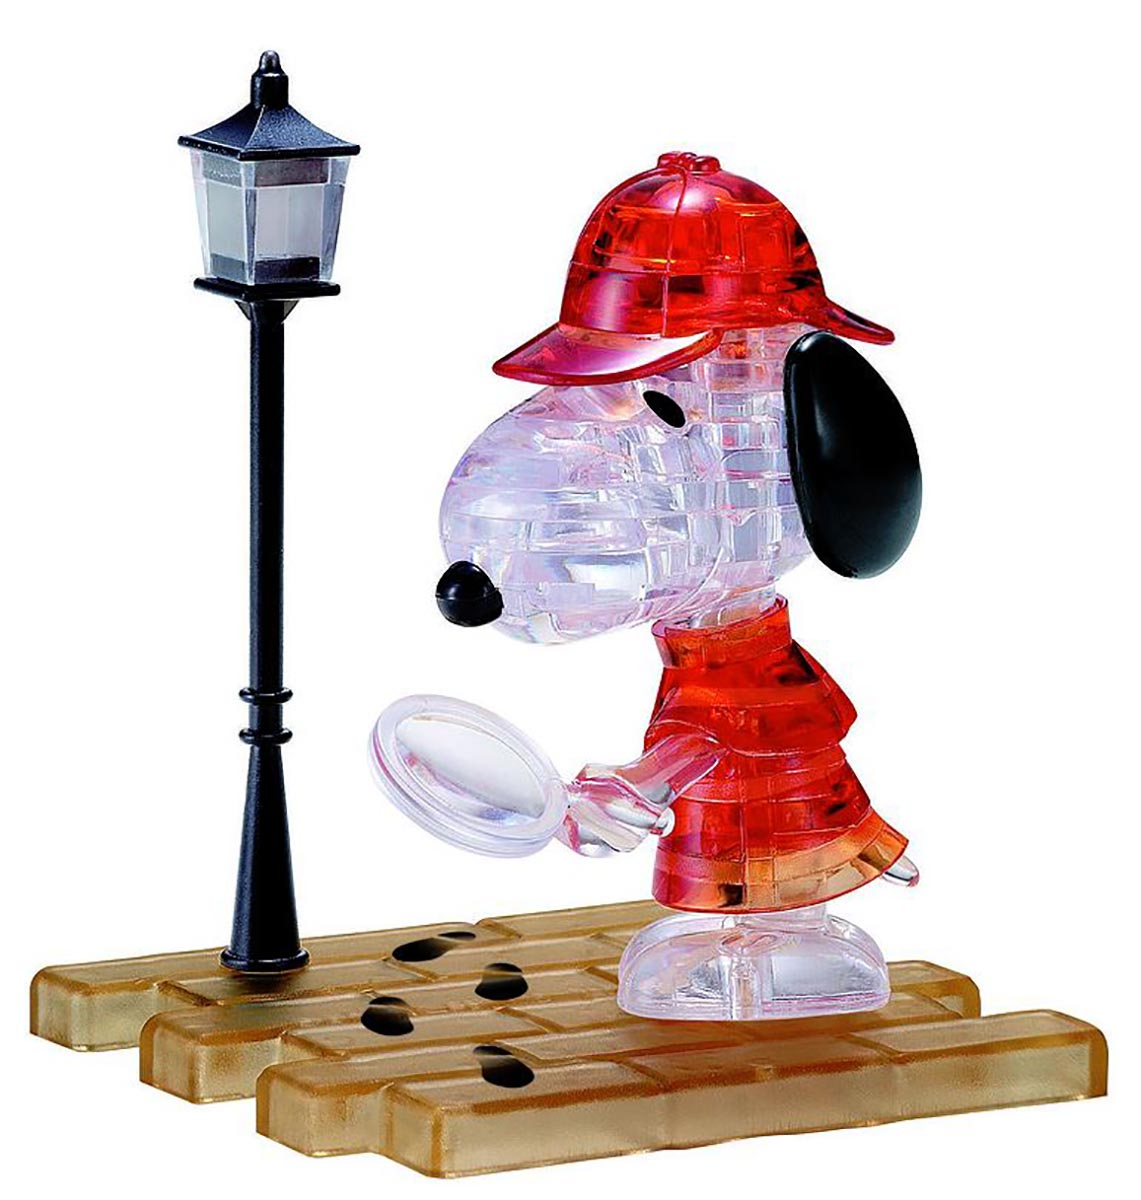 Snoopy Detective Cartoons Jigsaw Puzzle